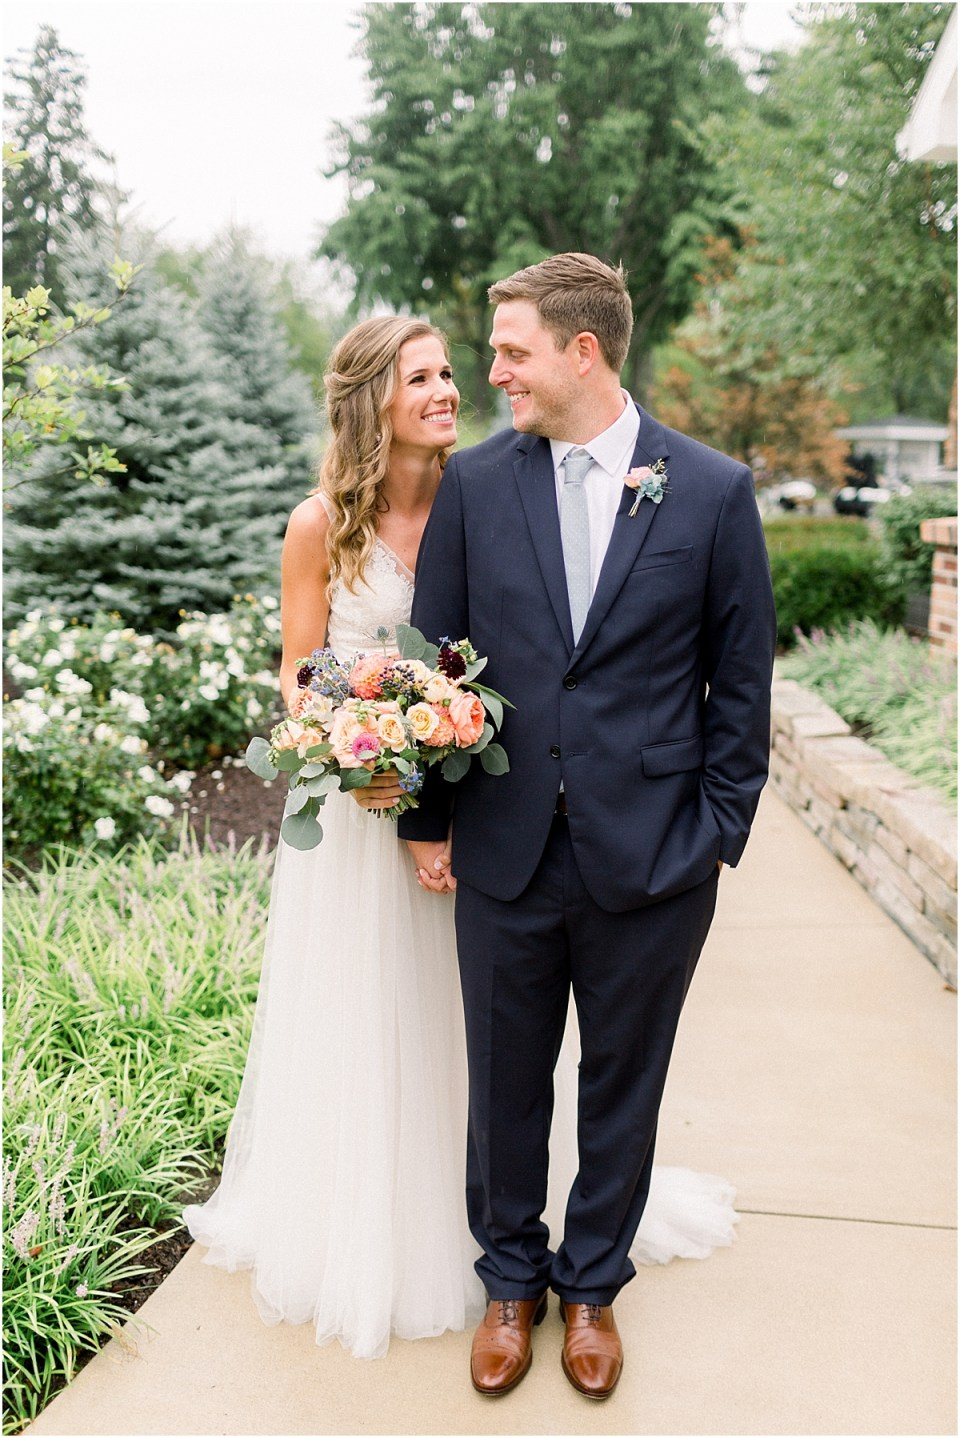 Arielle Peters Photography | Bride and groom walking outside in the rain at Sycamore Hills Golf Club in Fort Wayne, Indiana on wedding day.